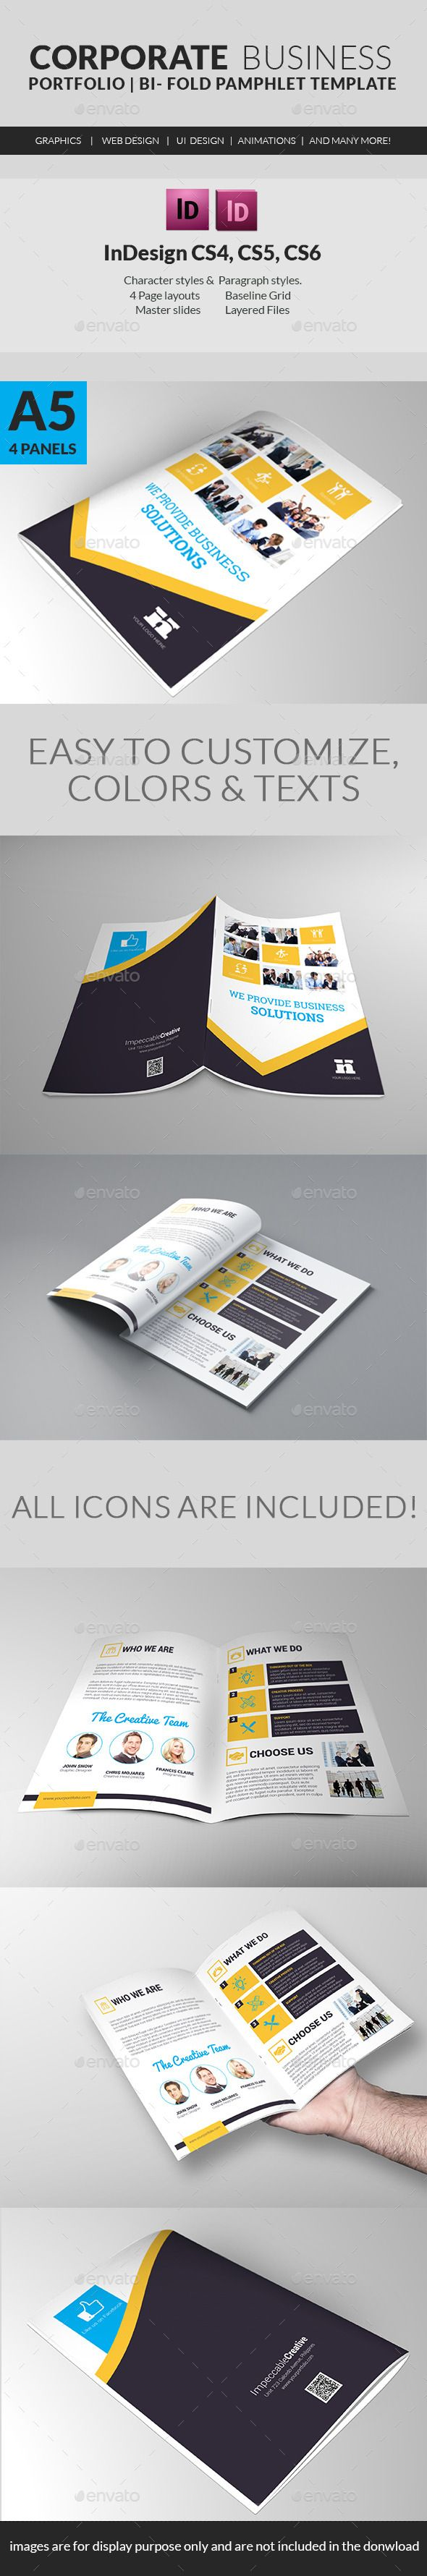 Cool 1 Page Resumes Tiny 1.5 Binder Spine Template Round 1.5 Inch Circle Template 11x17 Poster Template Old 13b Porting Templates Gray2 Binder Spine Template 25  Best Ideas About Pamphlet Template On Pinterest   Portfolio ..